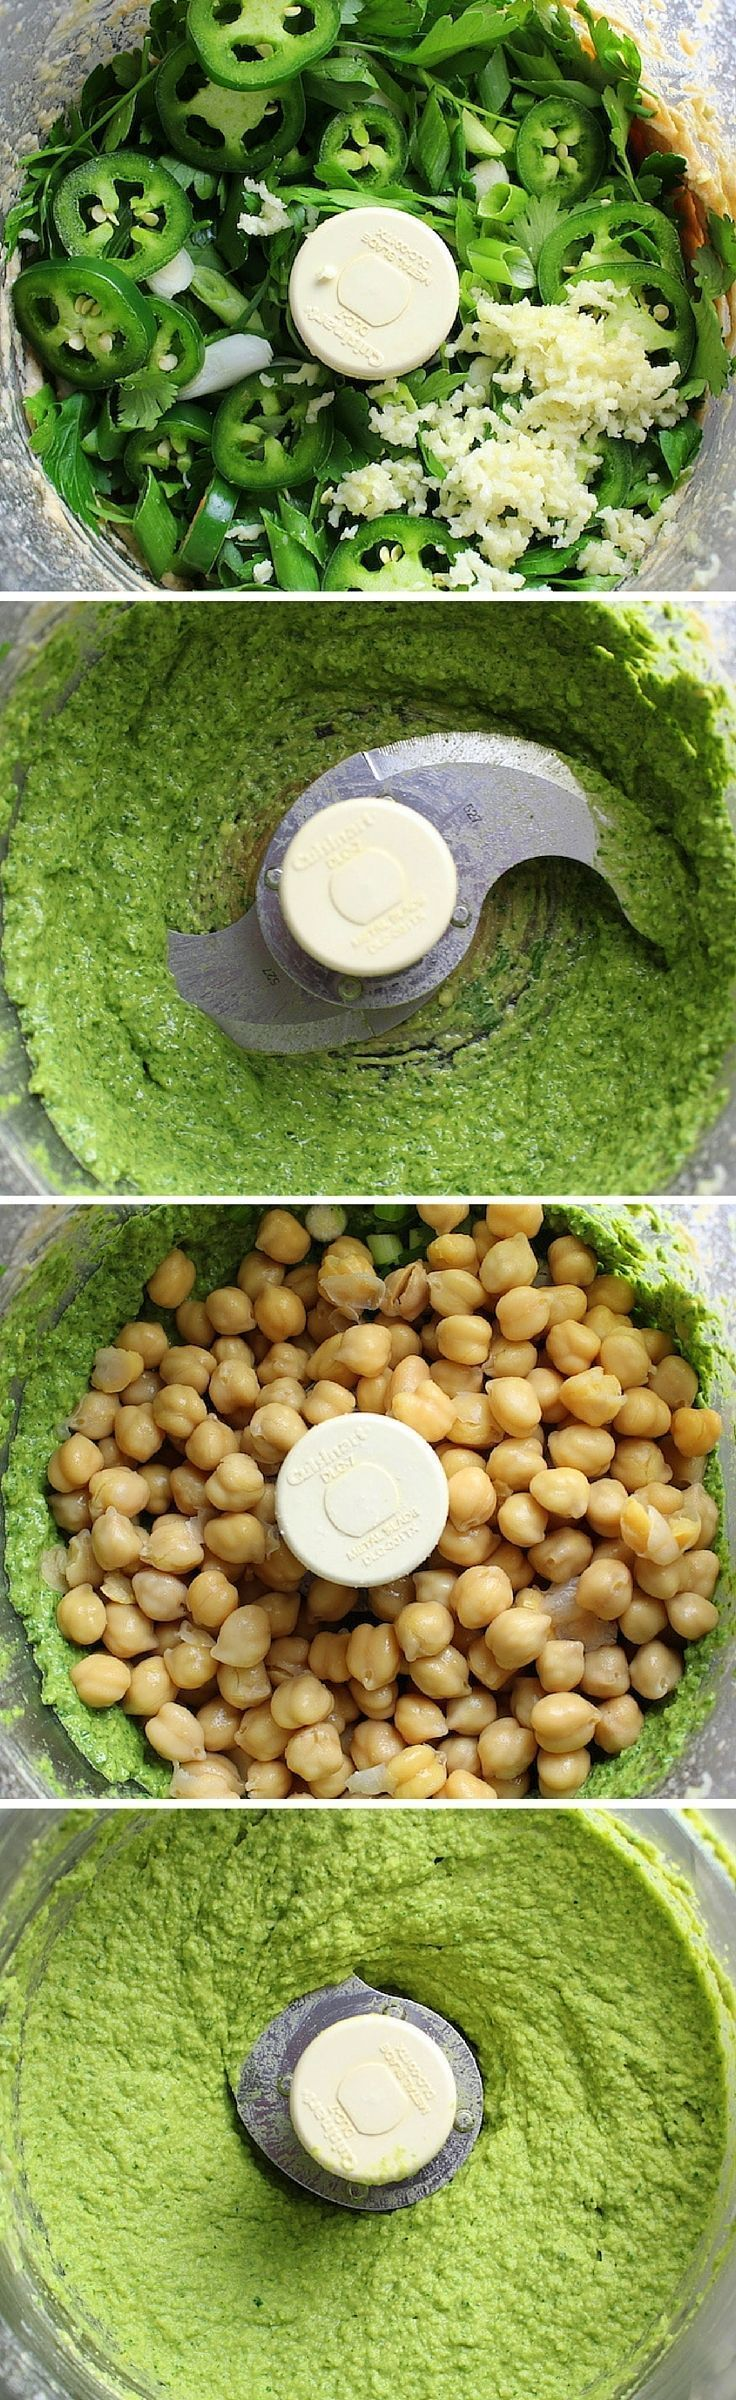 Spicy Green Hummus: This easy healthy homemade hummus adds a little kick to the…